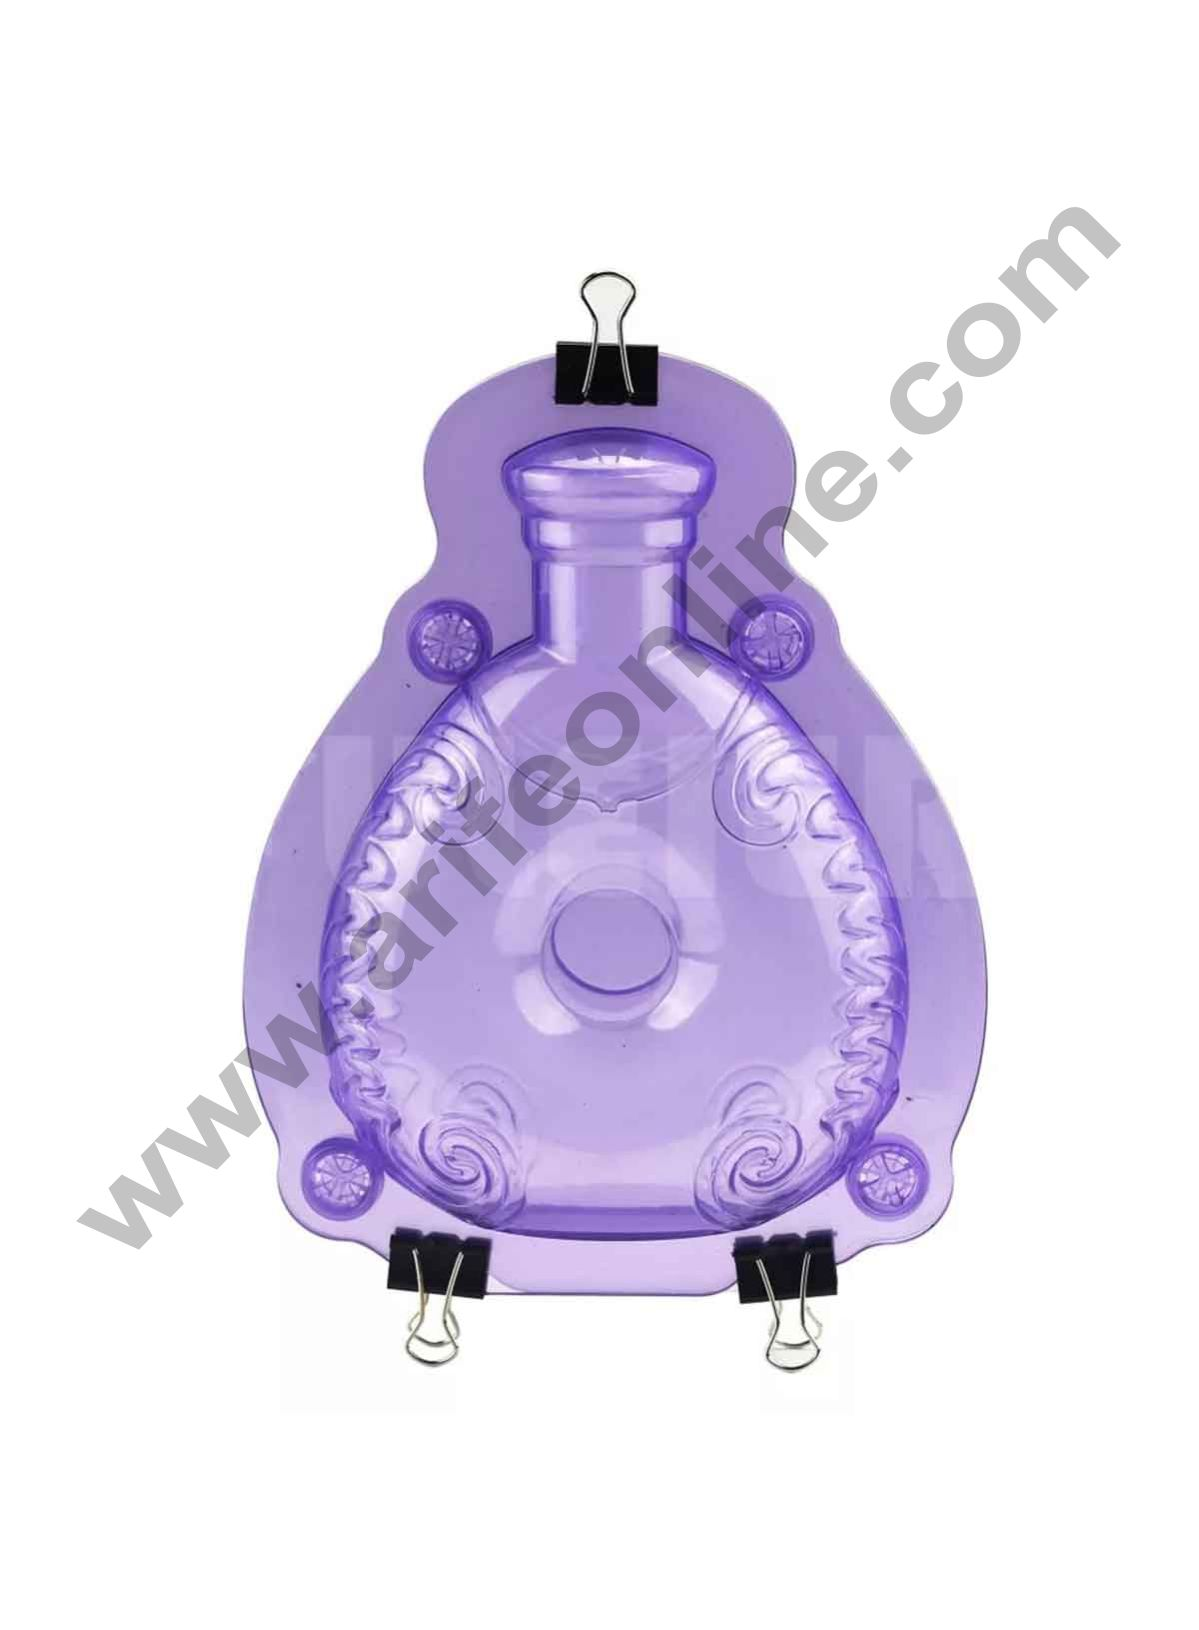 Cake Decor Polycarbonate 3D Perfume Bottle Chocolate Mold Cake Decorating Chocolate Mould Tools